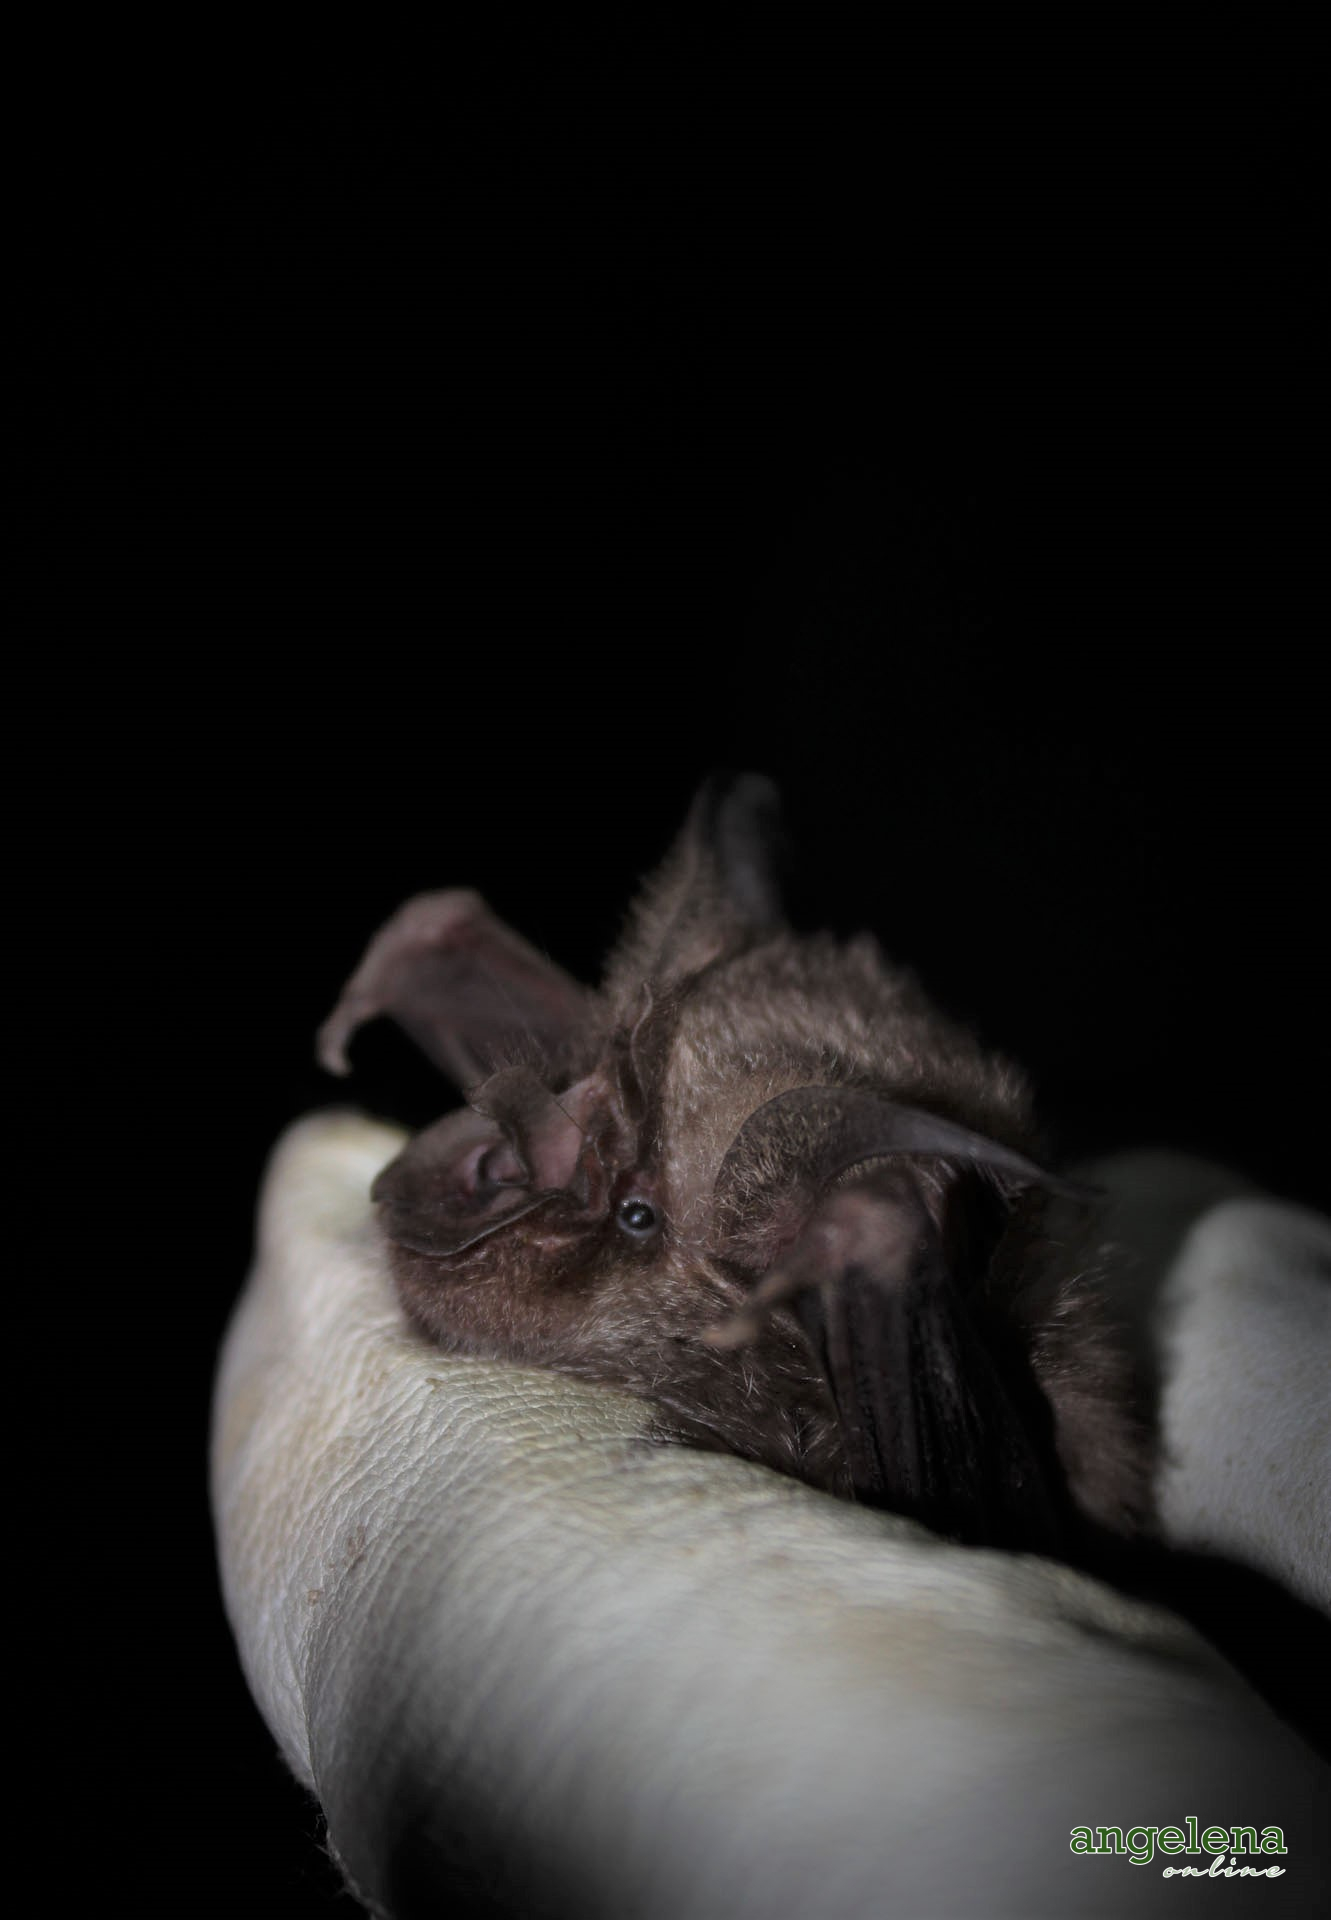 Horseshoe bat side (Malawi)